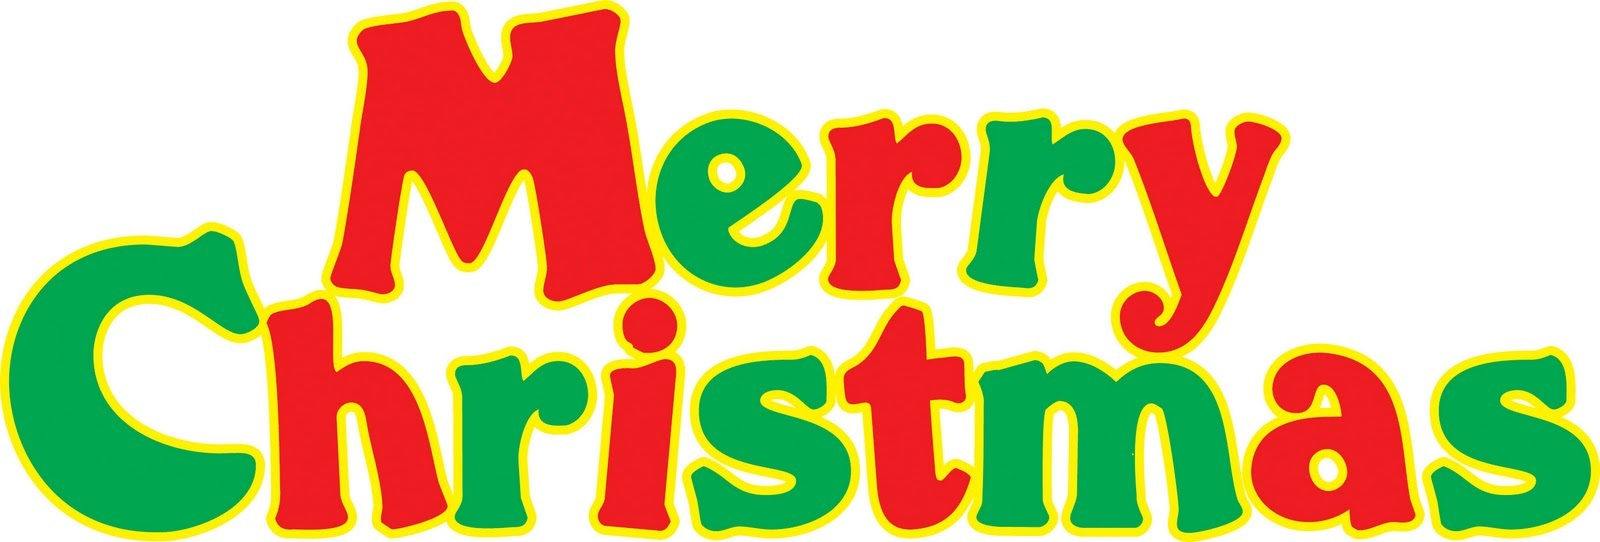 hight resolution of 1600x542 merry christmas clip art banner merry christmas 2017 clip